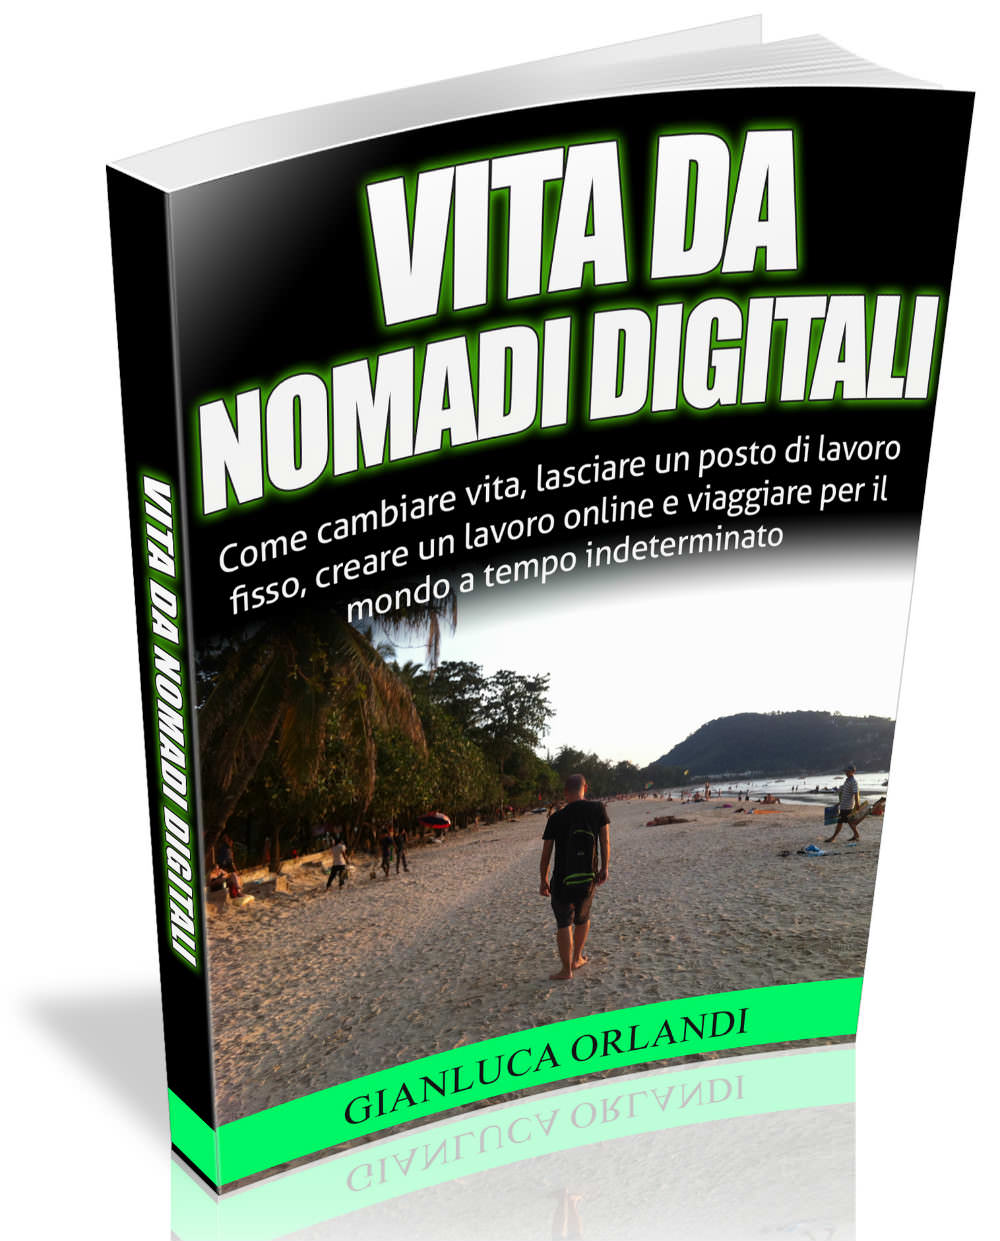 ebook vita da nomadi digitali